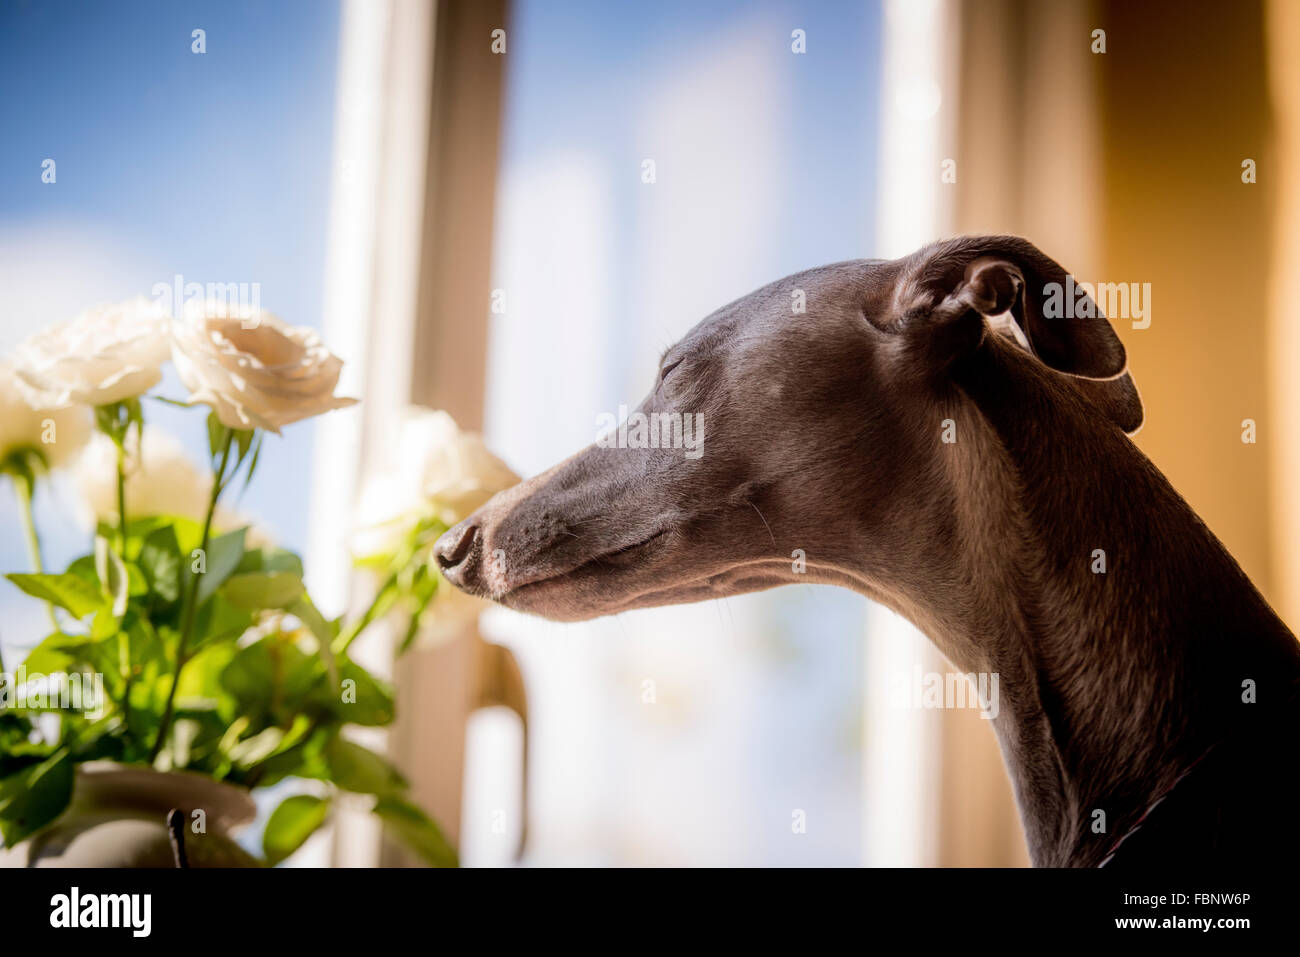 Whippets enjoying their holiday at the Whippet Hotel in West Sussex, UK. A guest looks out of the window. - Stock Image